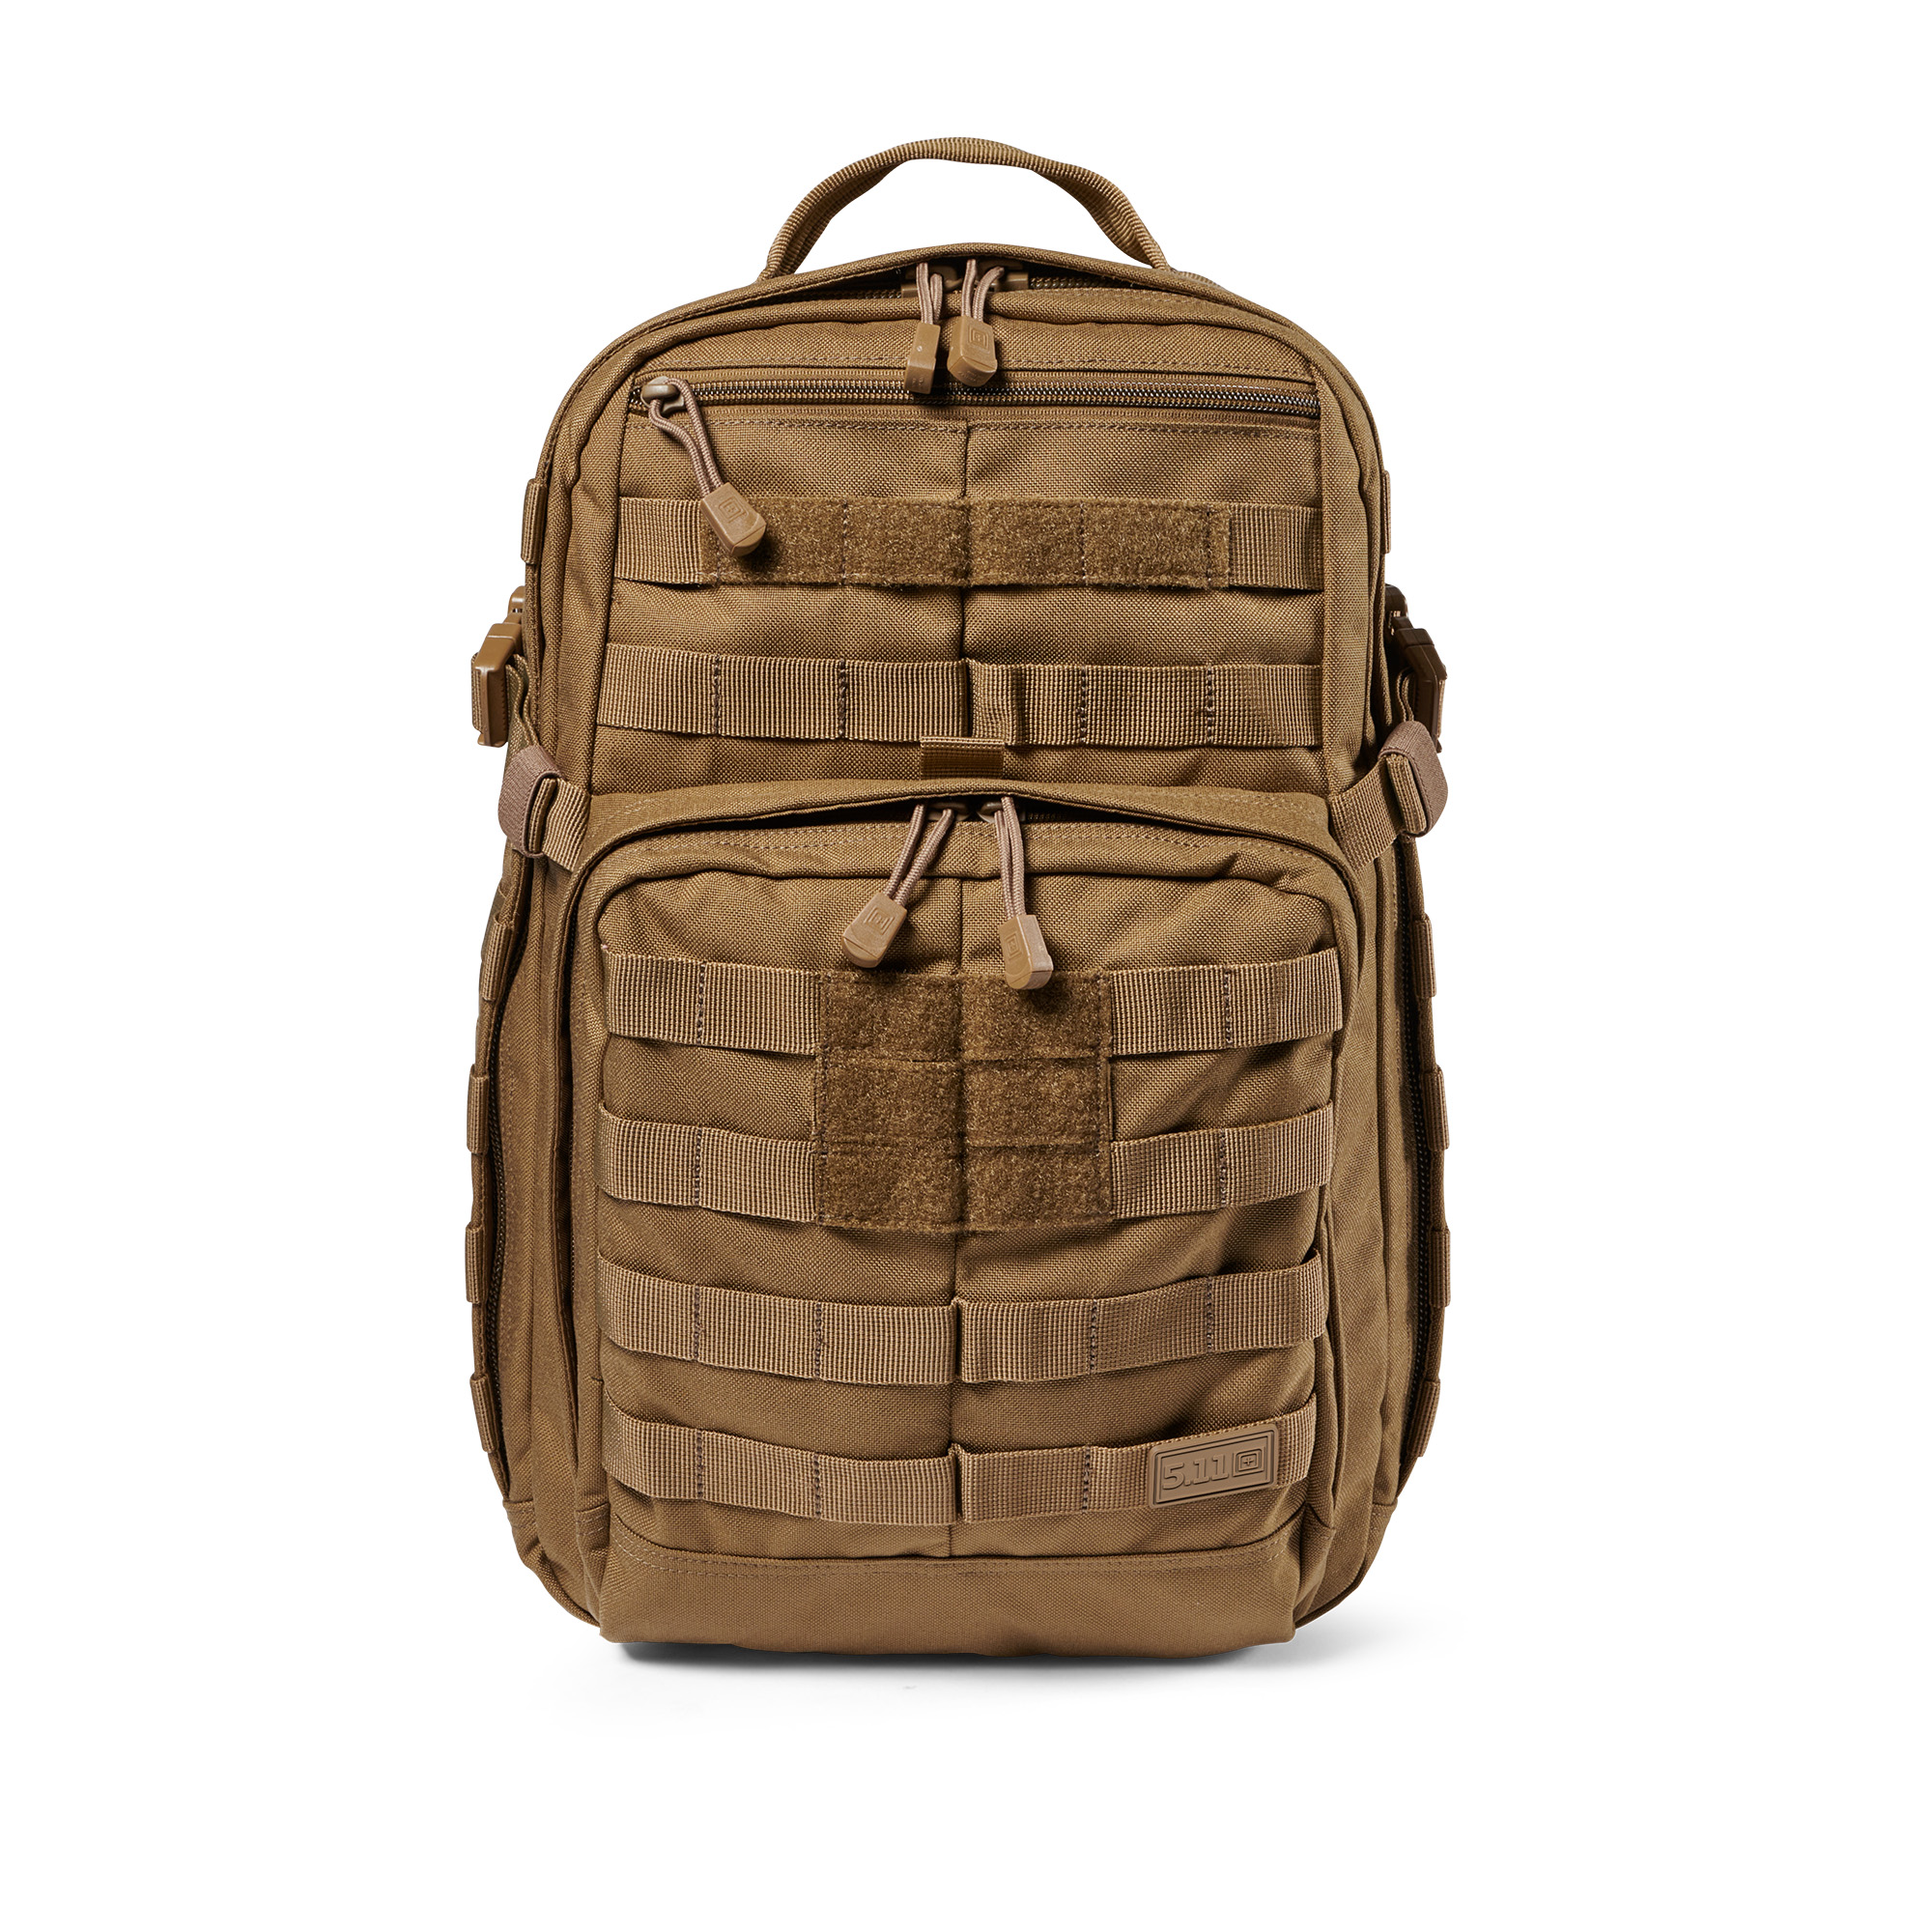 Balo 5.11 Tactical Rush 12 2.0 – Kangaroo